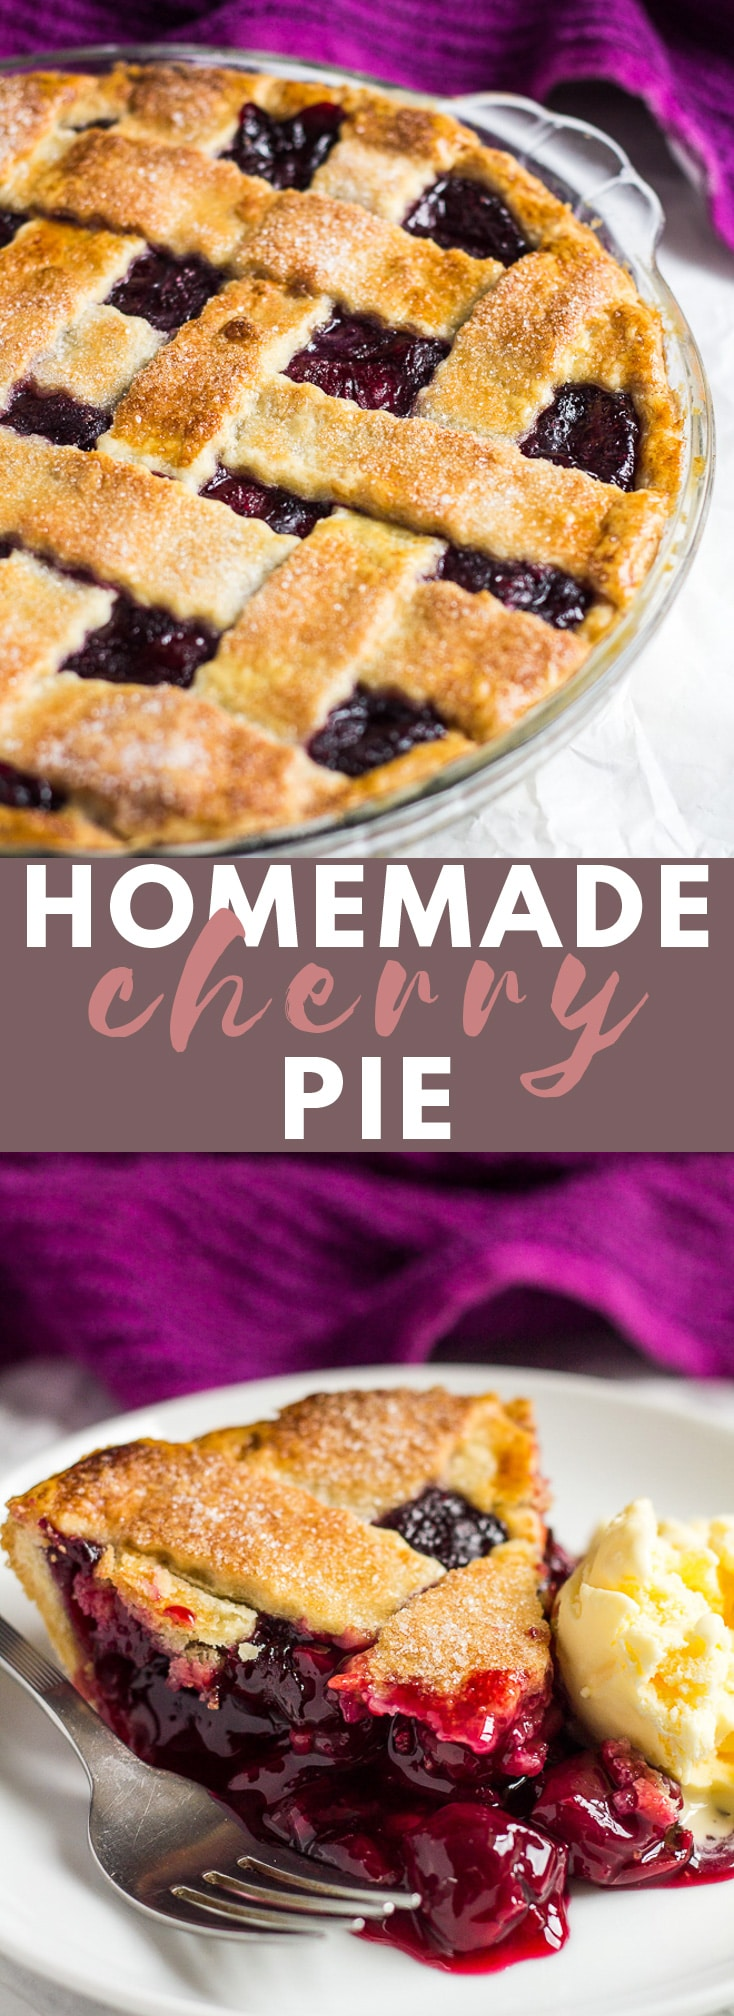 Homemade Cherry Pie - Deliciously sweet cherry pie made with a flaky, all-butter crust, and a homemade cherry filling! #homemade #cherrypie #pierecipes